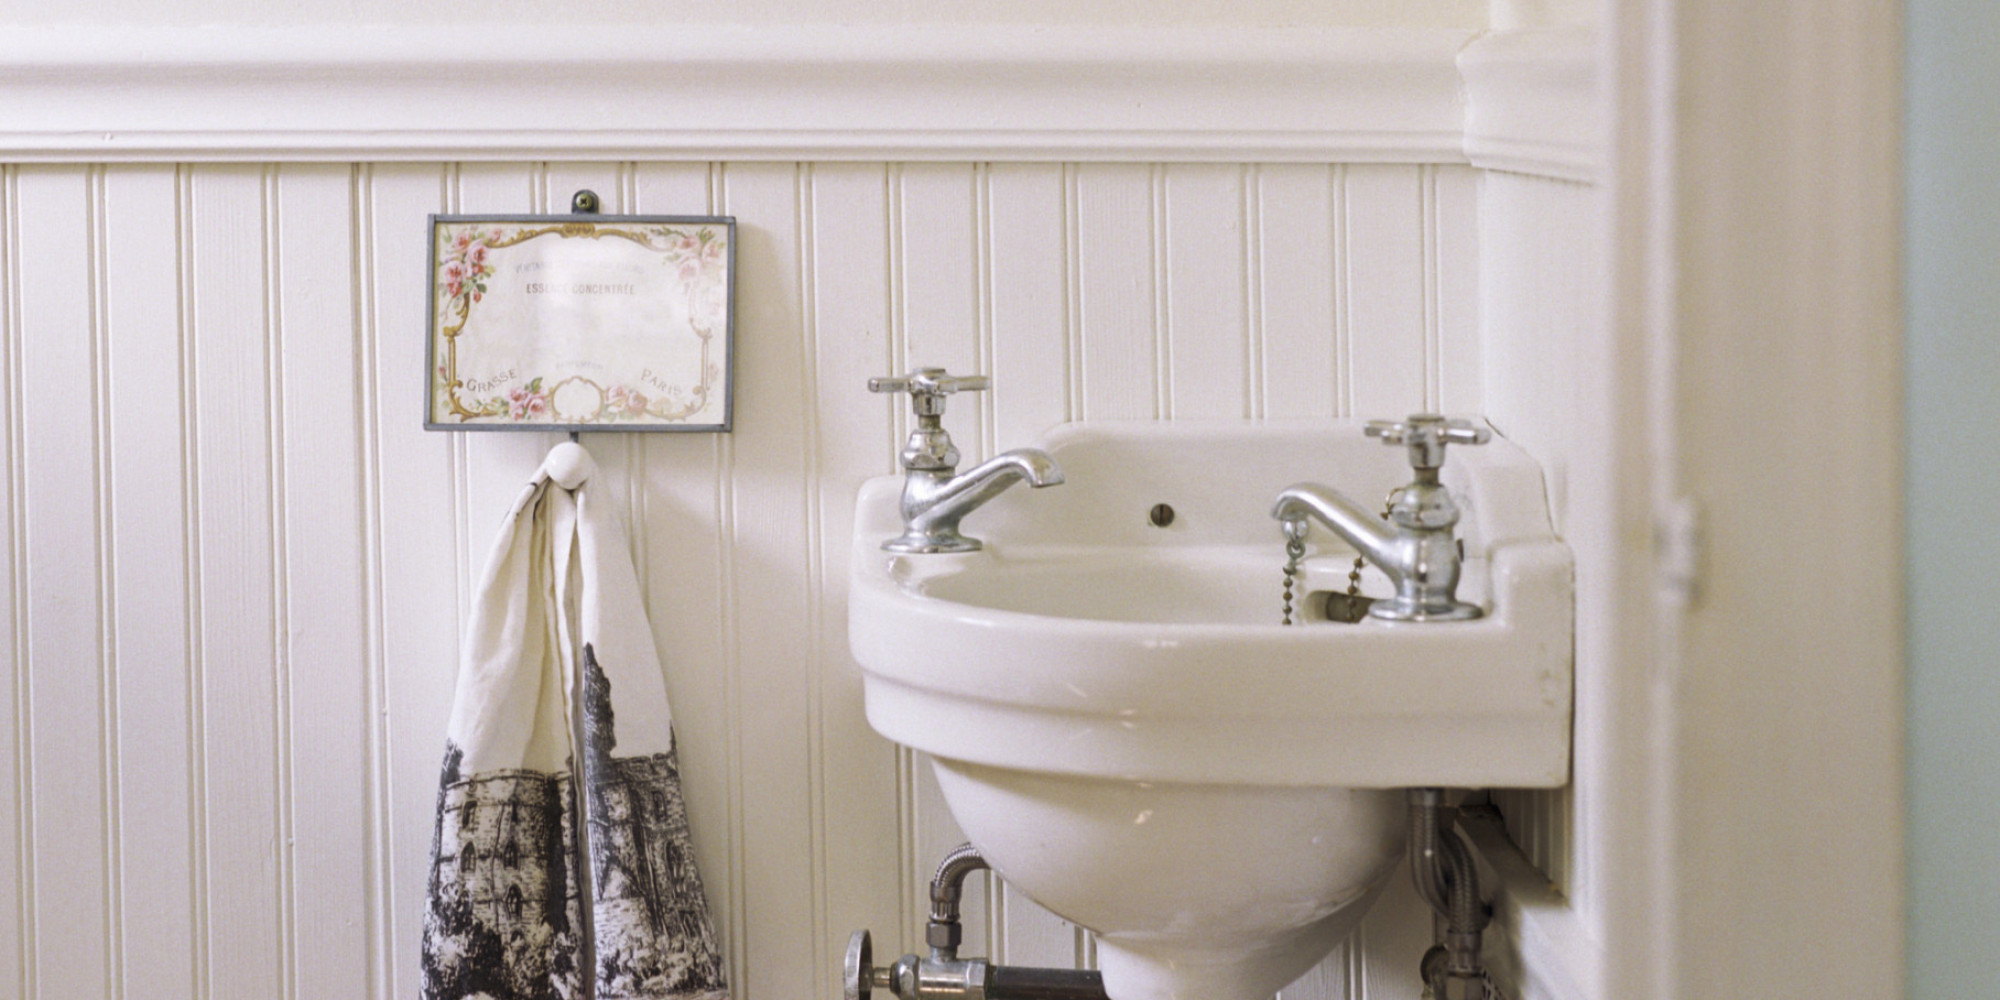 How To Make A Small Bathroom Look Bigger Using Clever